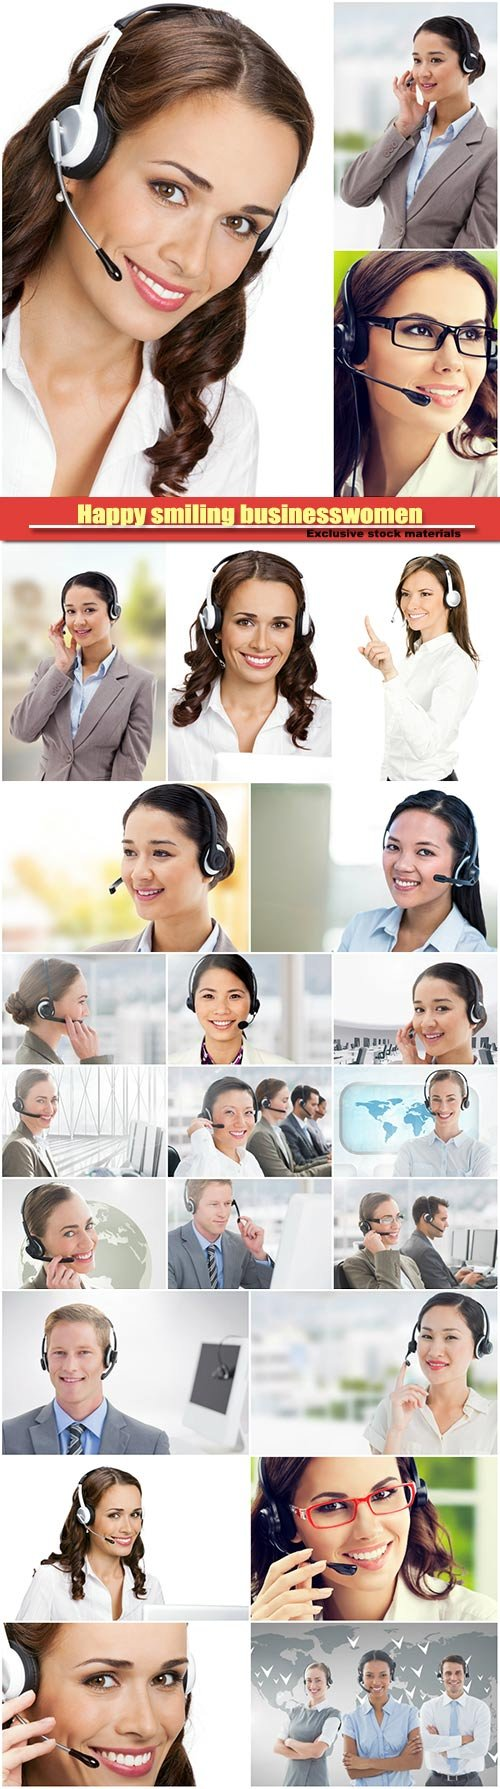 Happy smiling businesswoman and businessmen operator or call center worker